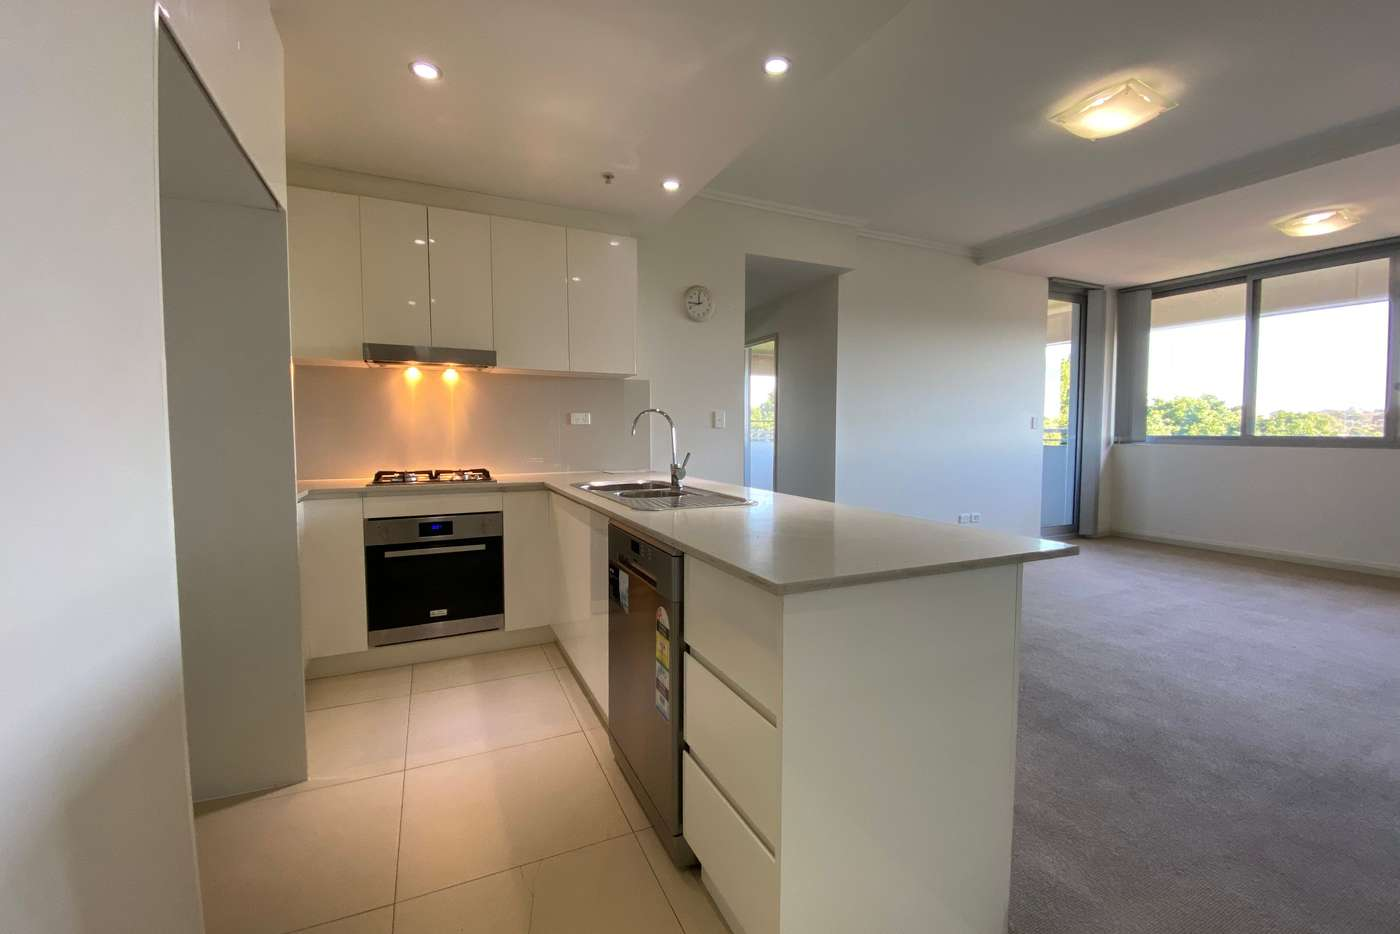 Main view of Homely apartment listing, 802/23-26 Station Street, Kogarah NSW 2217